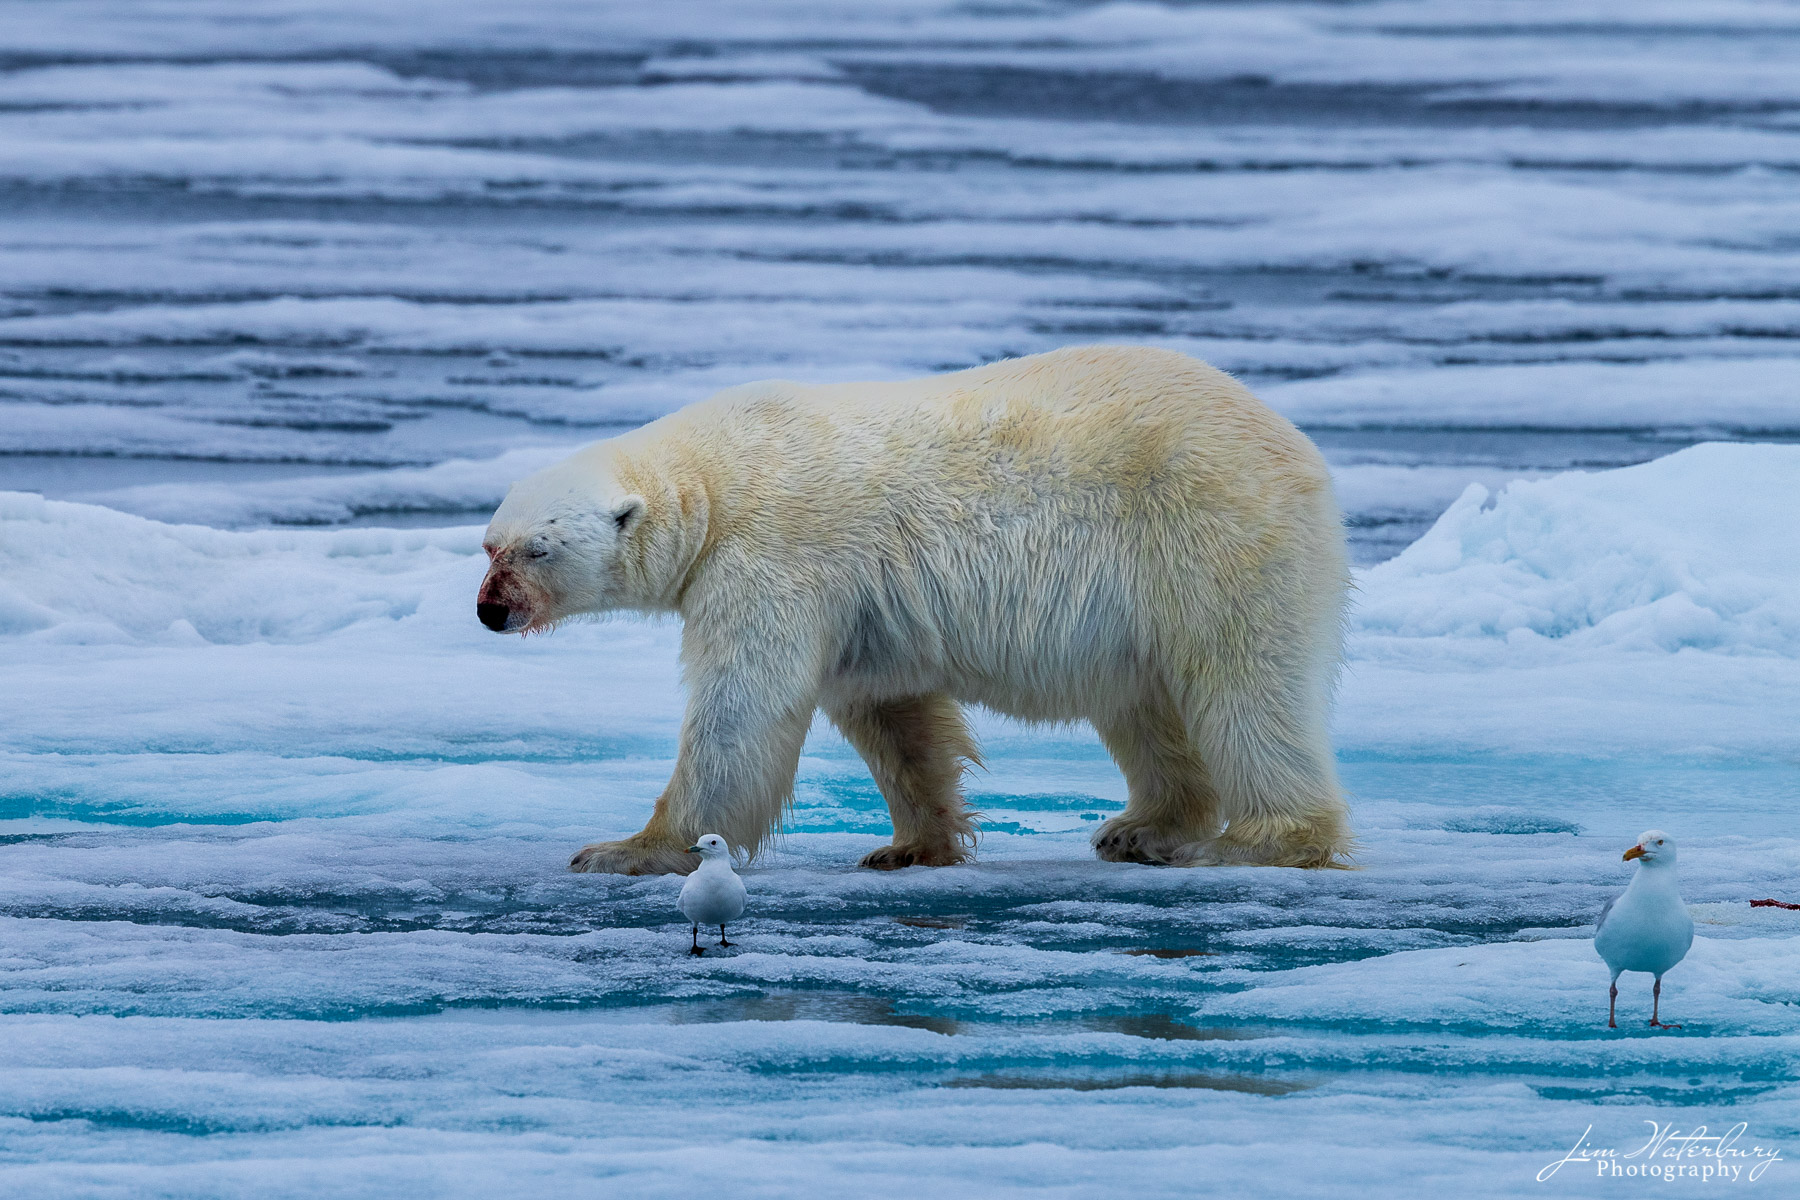 A large polar bear walks along the pack ice following a successful seal hunt in the Arctic Ocean north of Svalbard.